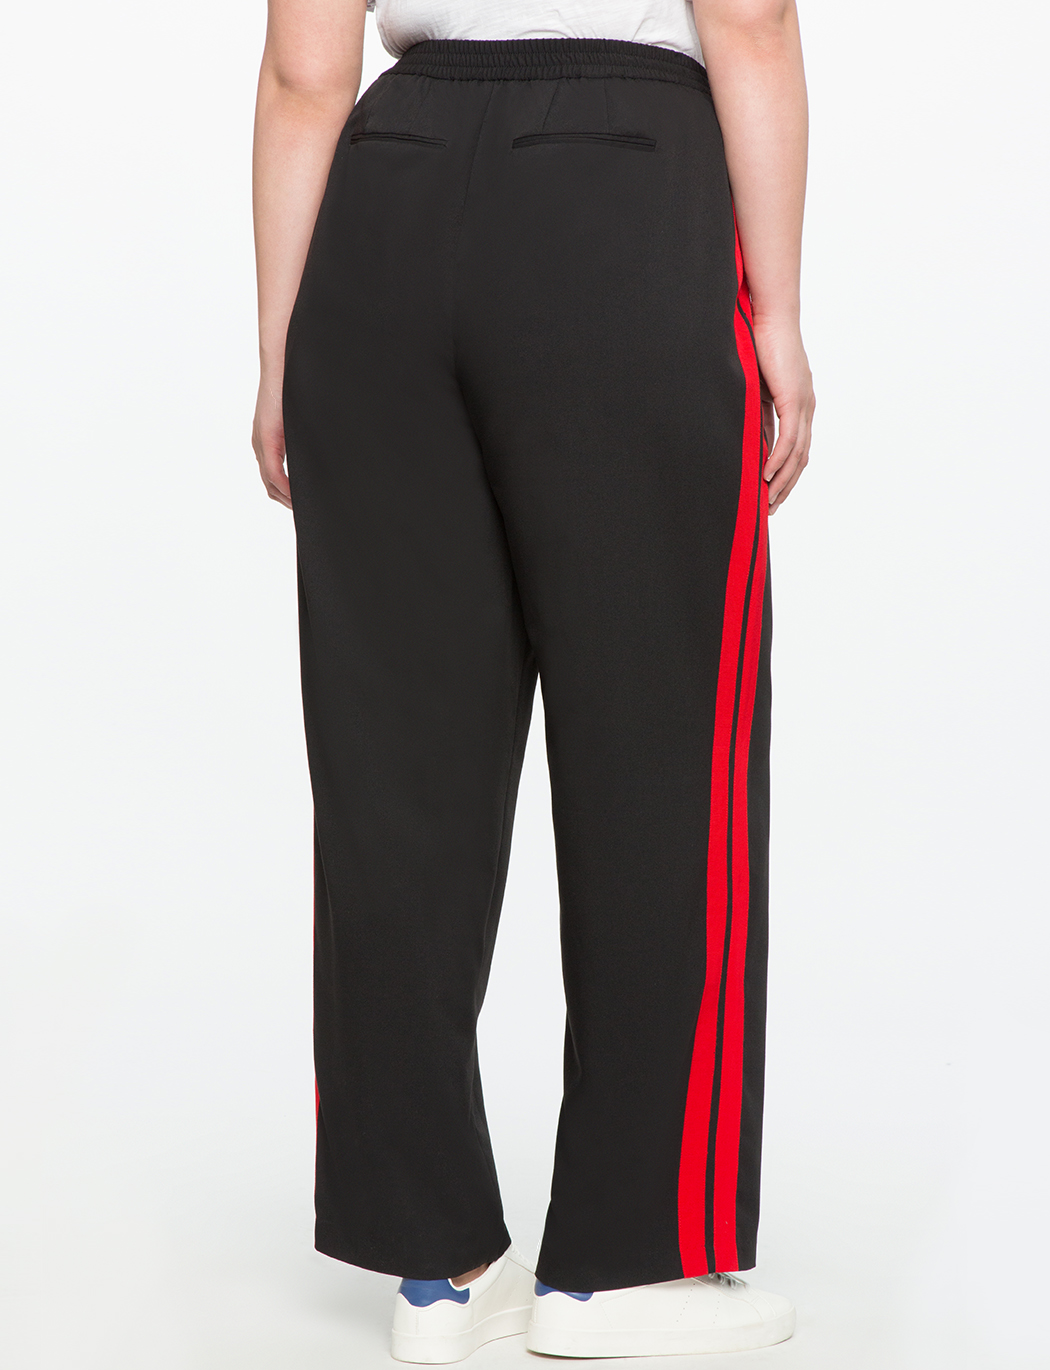 Side Stripe Track Pant Women S Plus Size Pants Eloquii